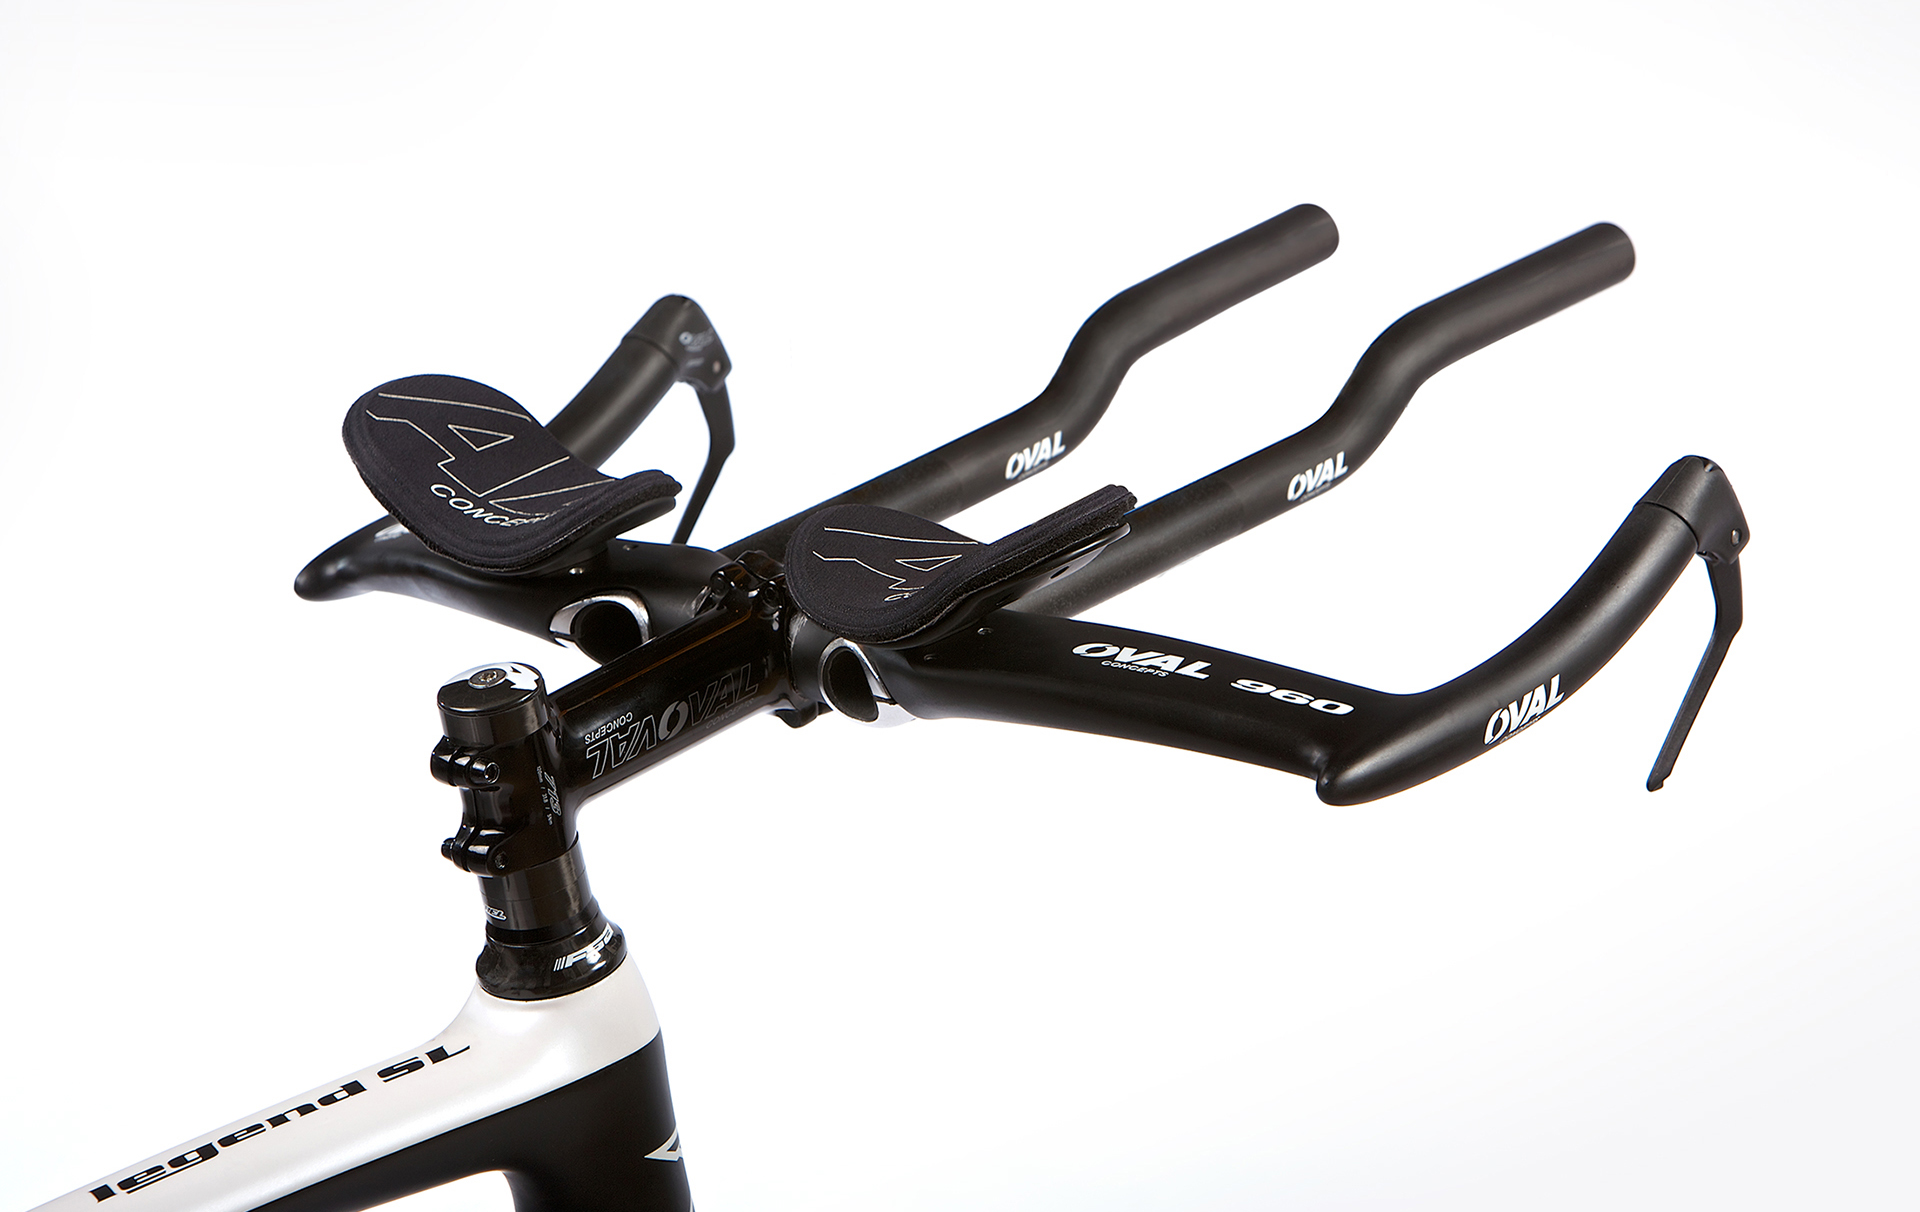 Oval Concepts Aerobar Product Design 2